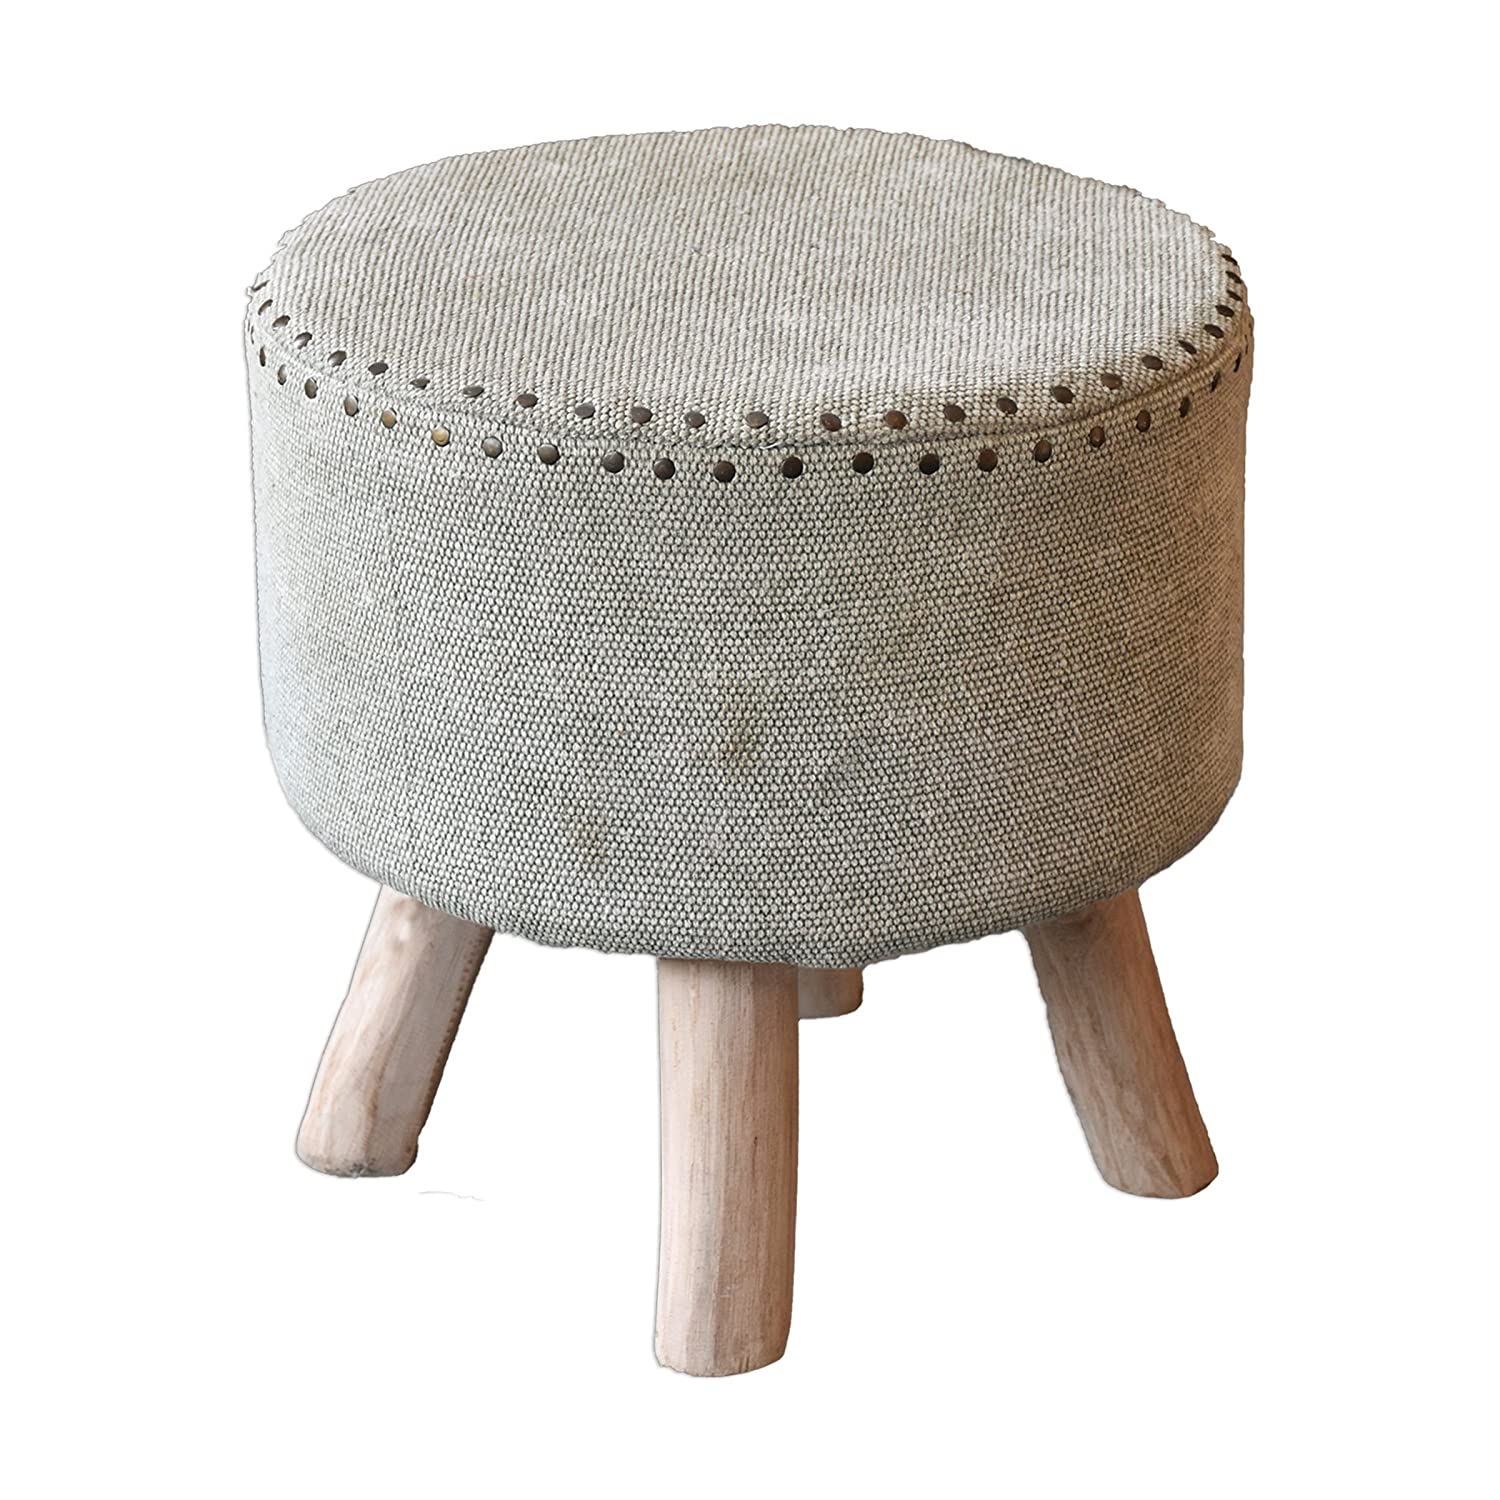 Swanky furniture Amazoncom My Swanky Home Rustic Round Small Exposed Wood Accent Stool Sage Green Nailhead Trim Midcentury Kitchen Dining Tripadvisor Amazoncom My Swanky Home Rustic Round Small Exposed Wood Accent